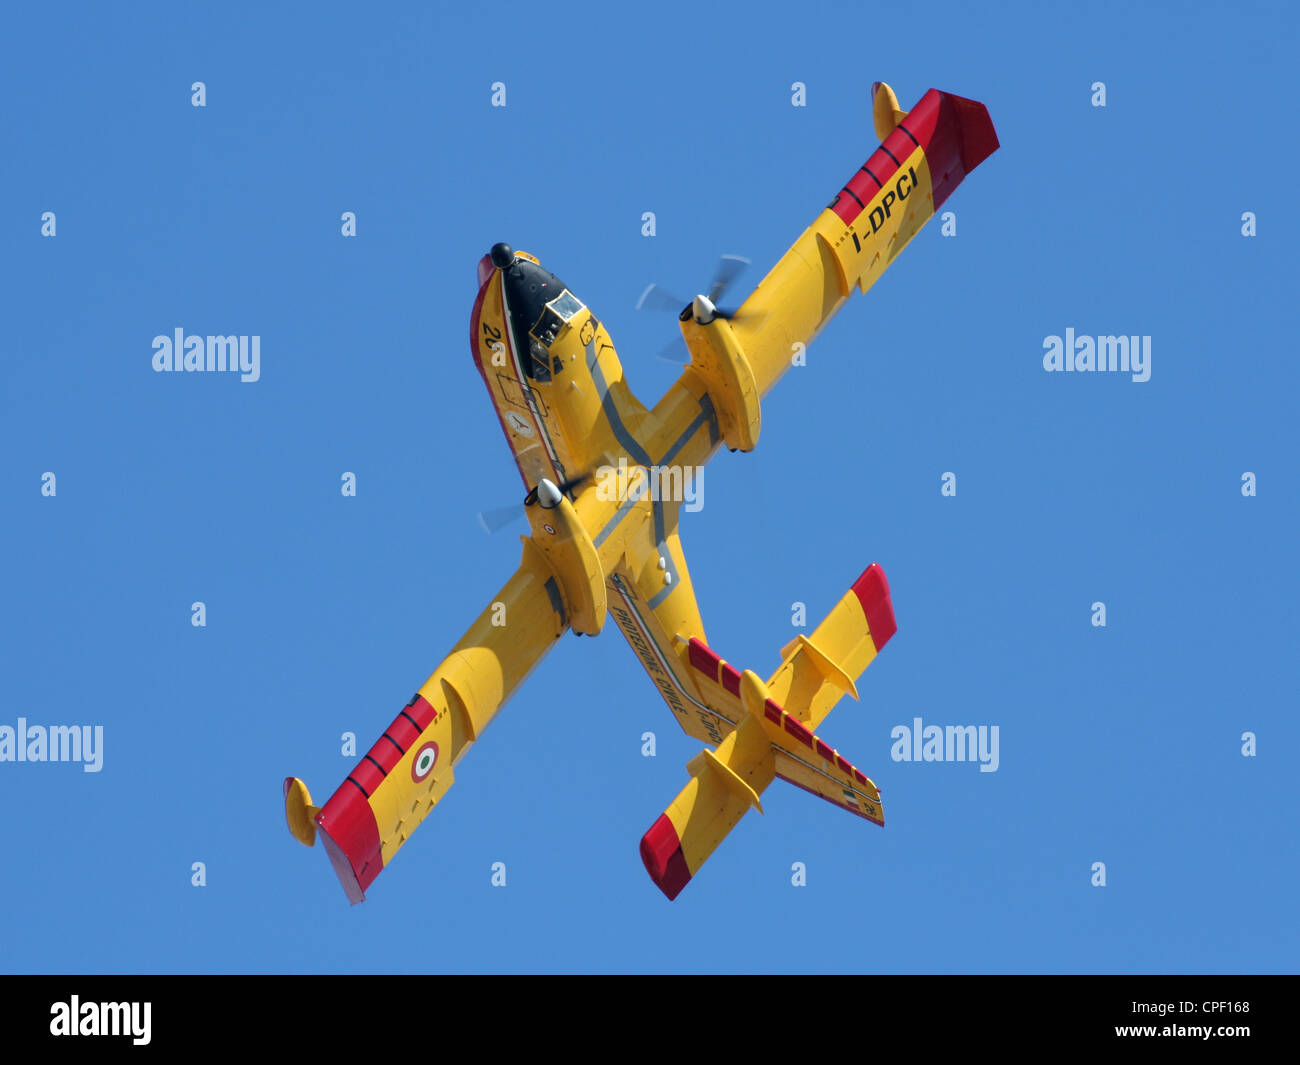 Italian Bombardier 415 (Canadair CL-415) twin engine turboprop waterbomber plane displaying its agility - Stock Image